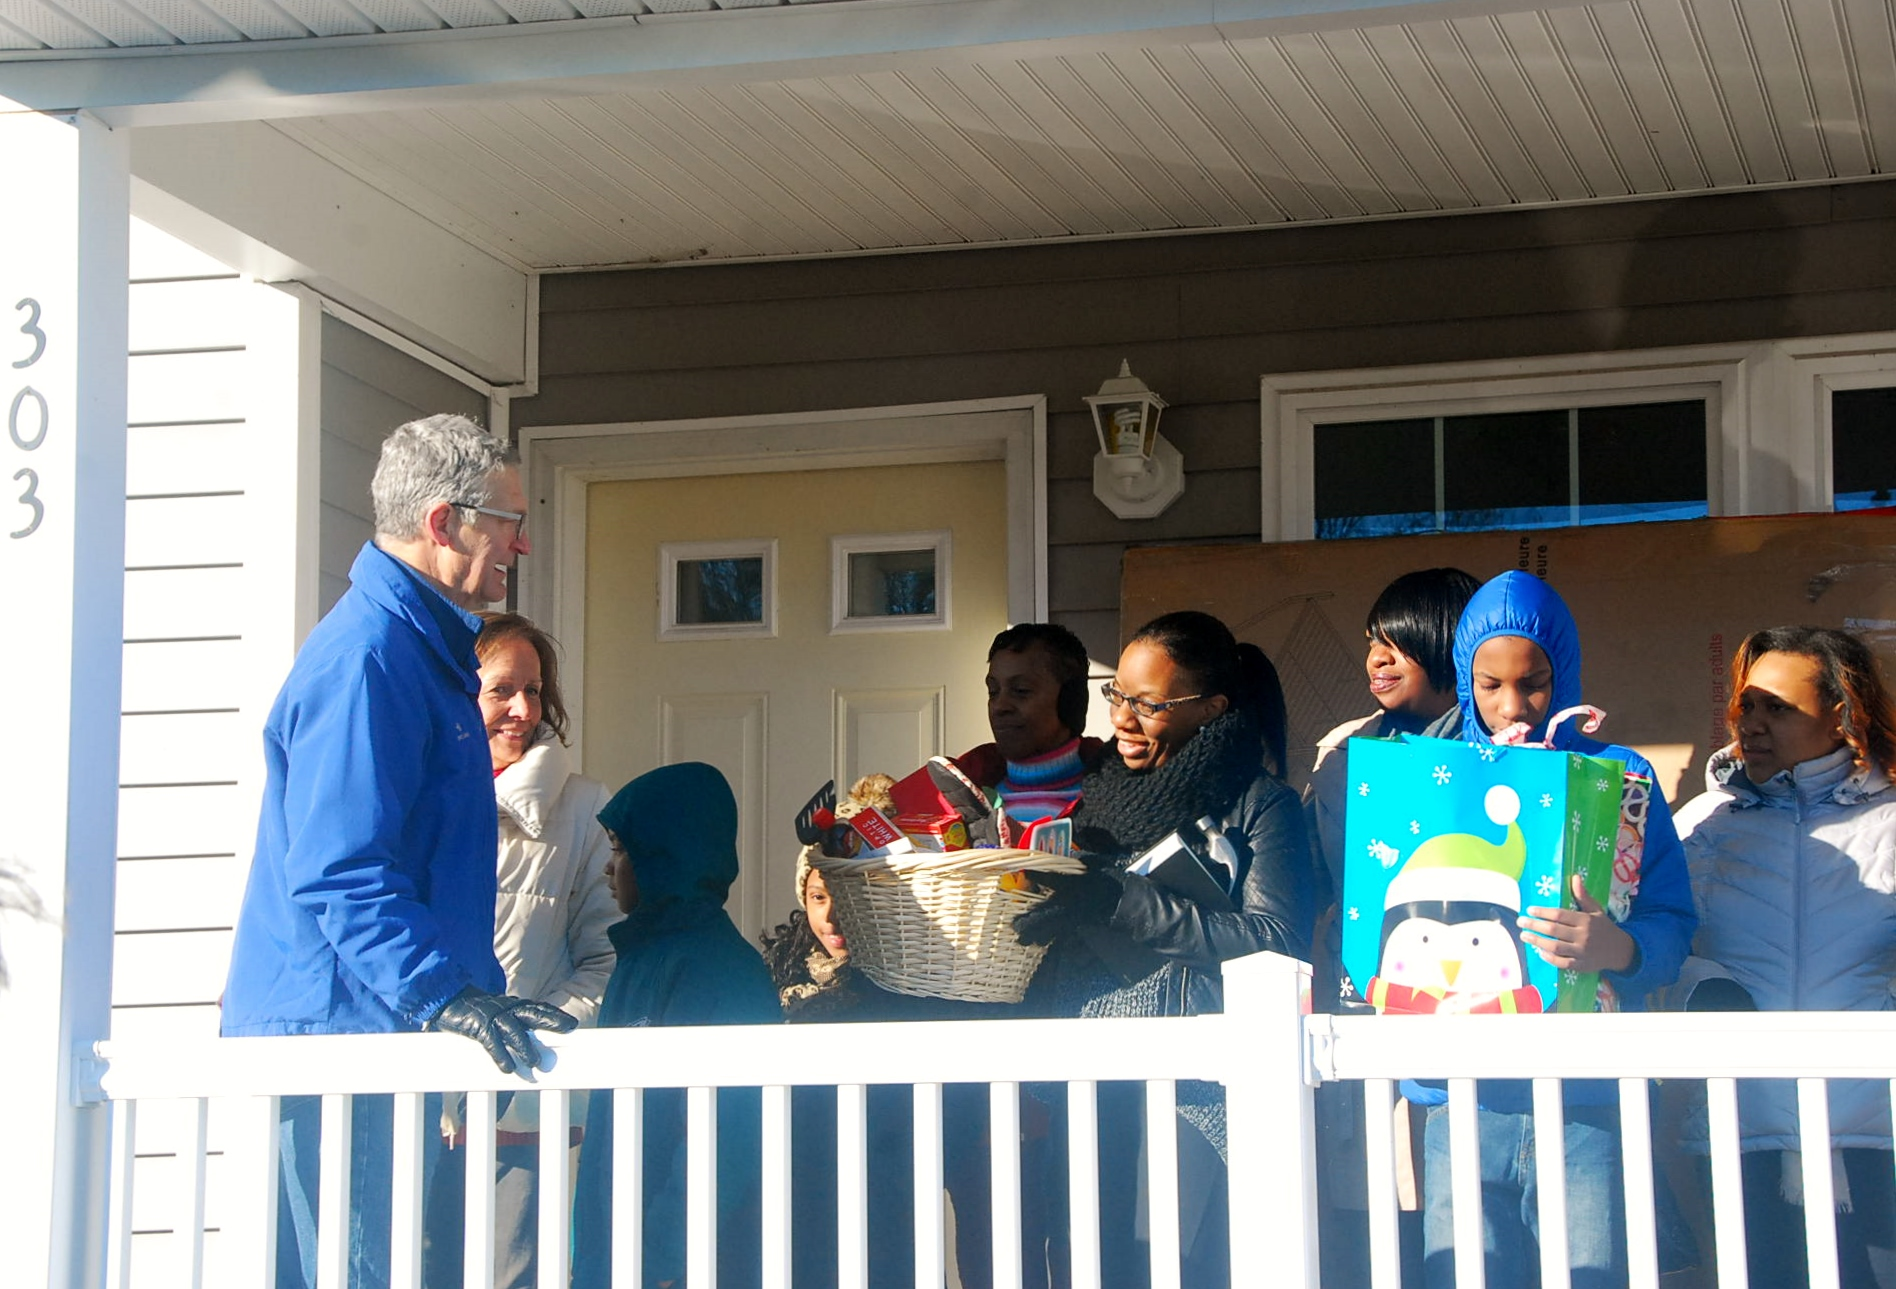 Michael Leader and Becky Bennington from SNC Lavalin present new homeowner, Tasha, with a housewarming basket.